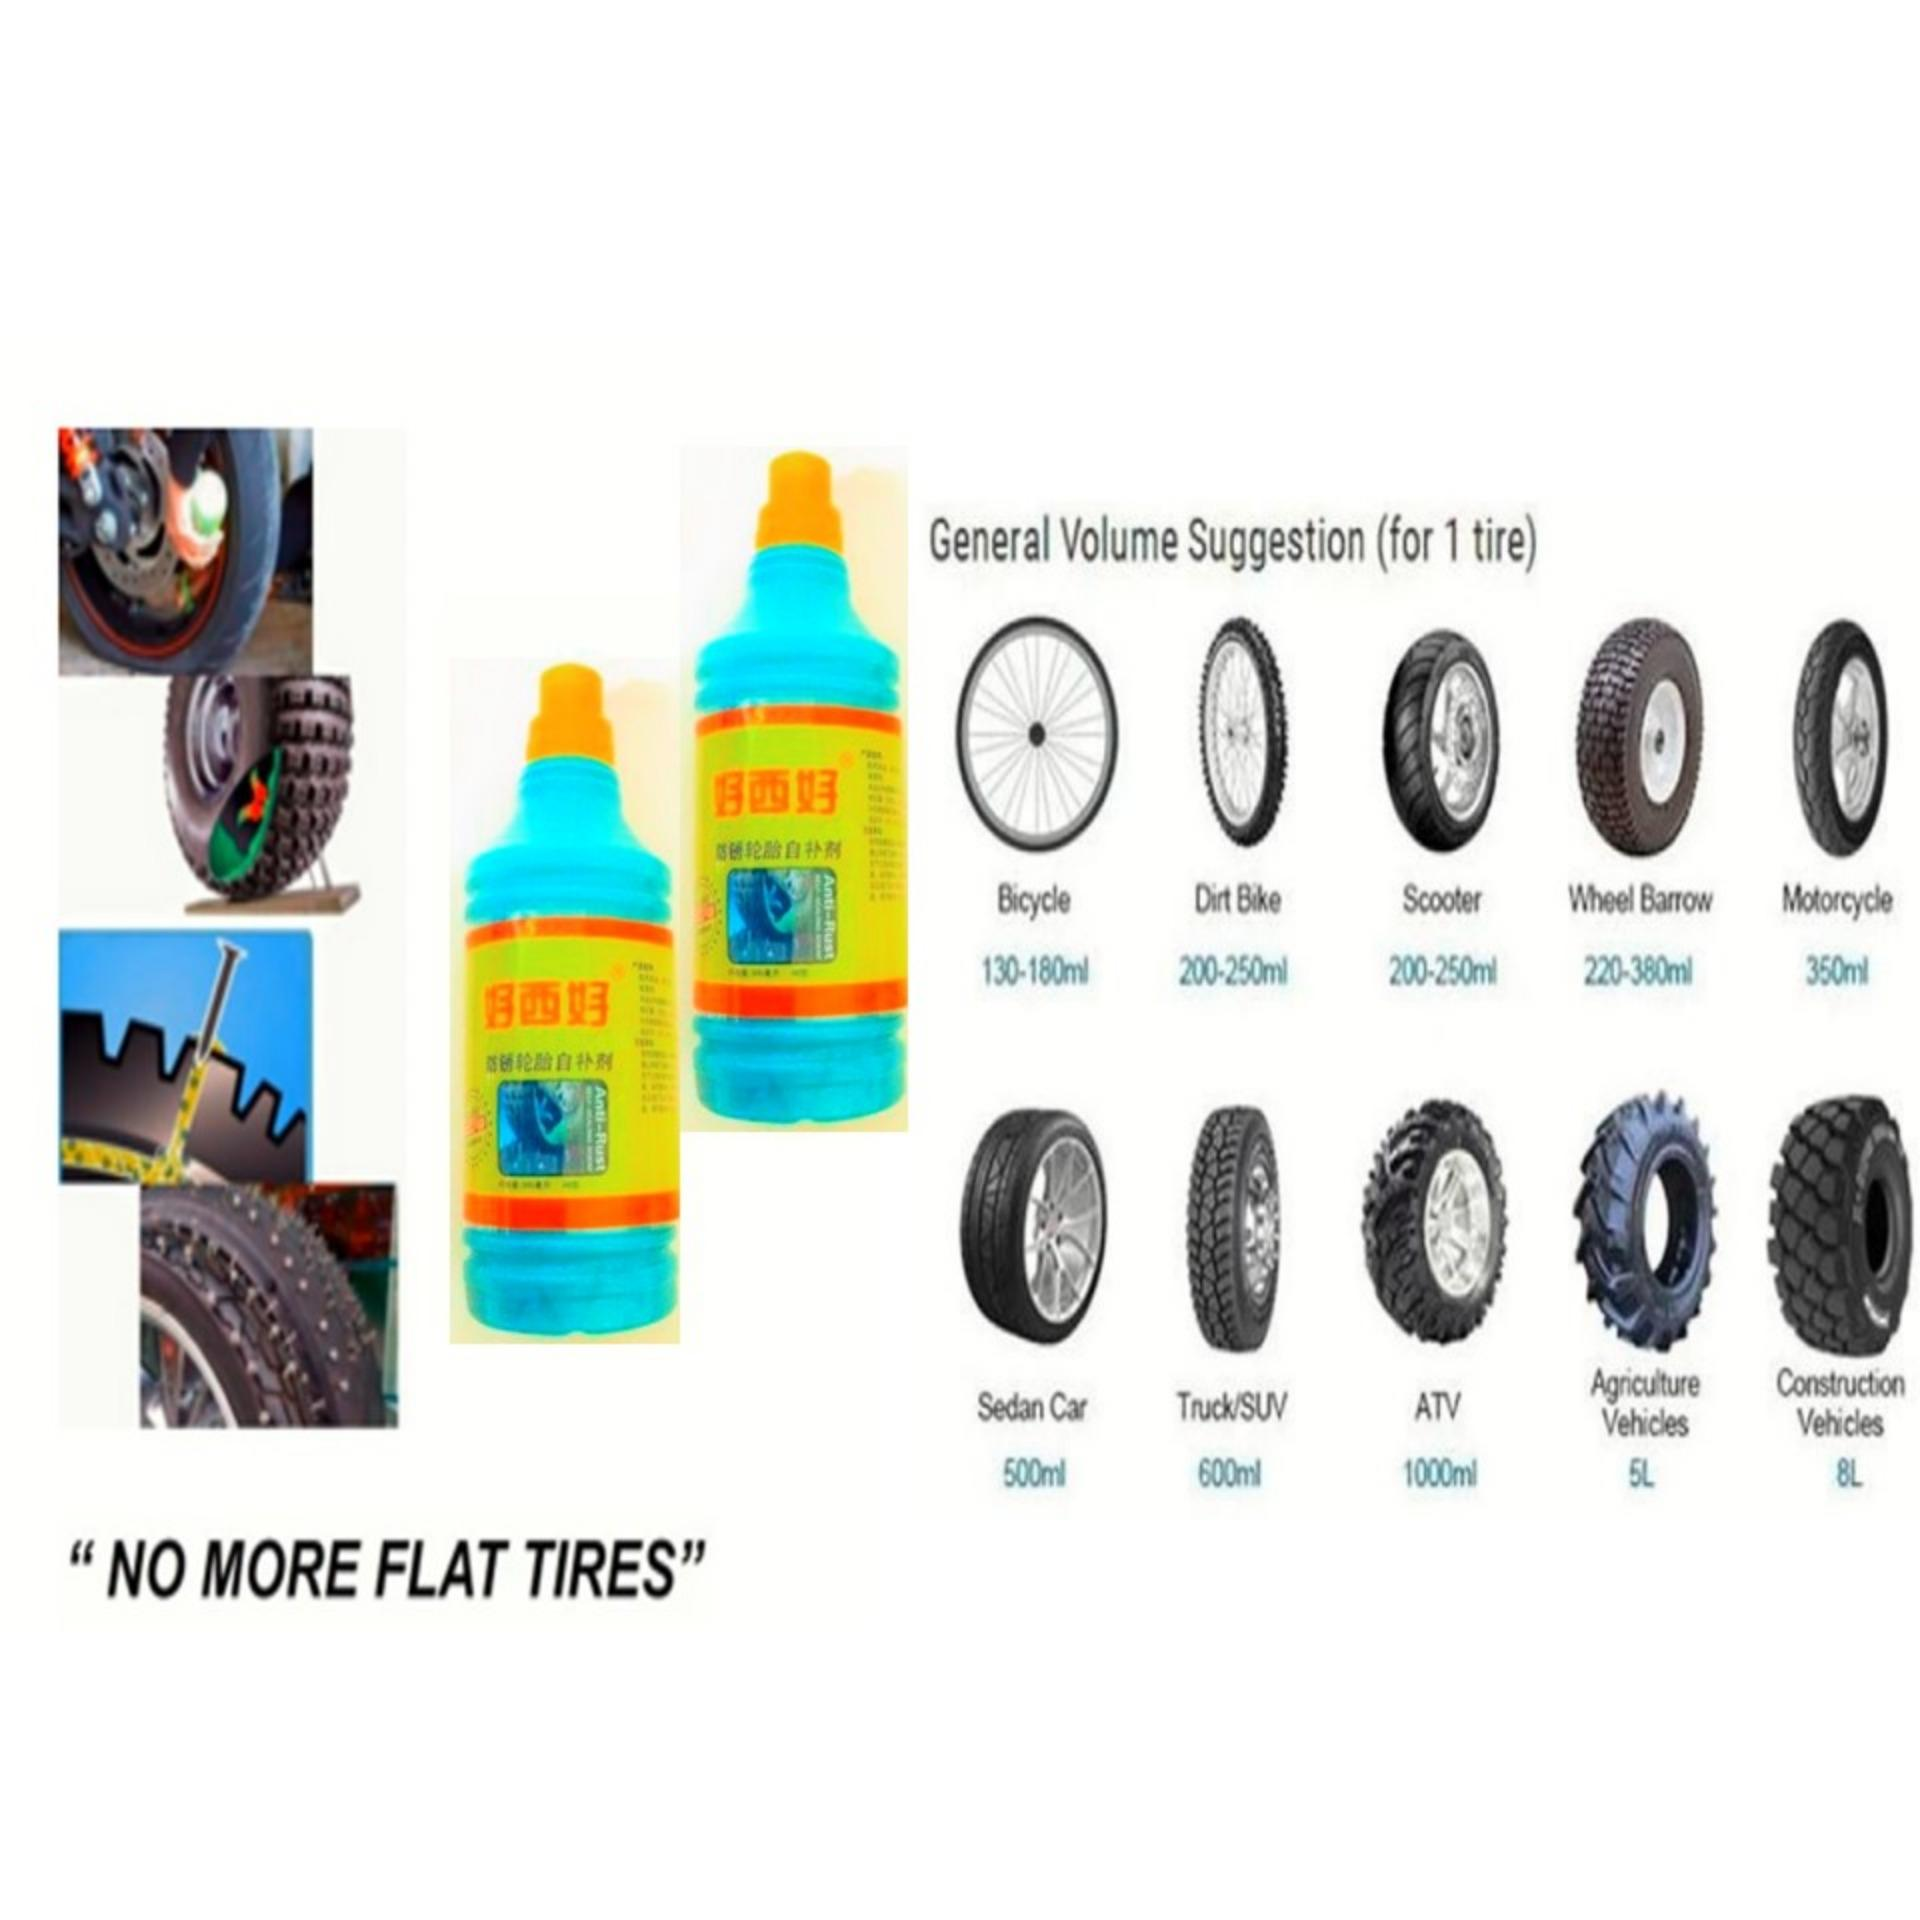 2 Pcs 500 Ml Car / Motor Tire Seal Tyre Sealant  No More Flat Tires Proven & Tested By Golden Fortune Corp..